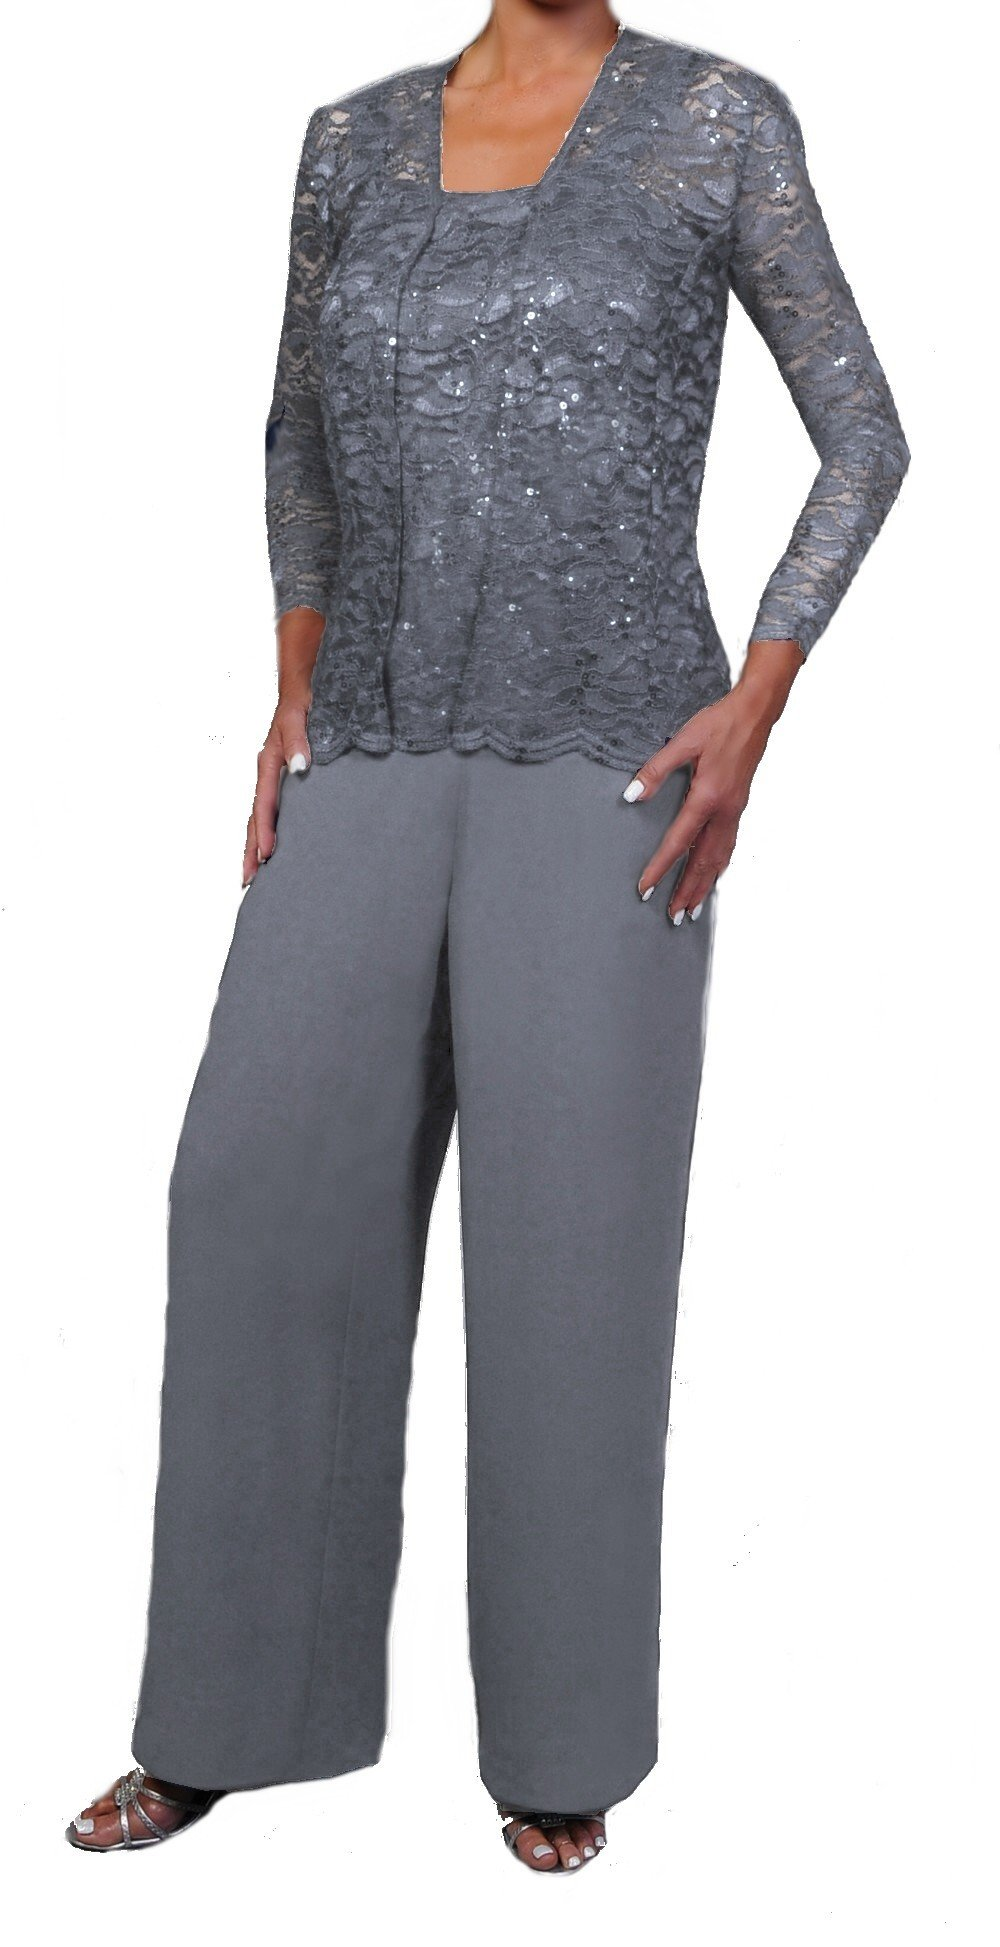 Love My Seamless Elegant Mother Of The Bride Formal 3 Piece Pant Suit Lightly Beaded Lace (3X, Silver)